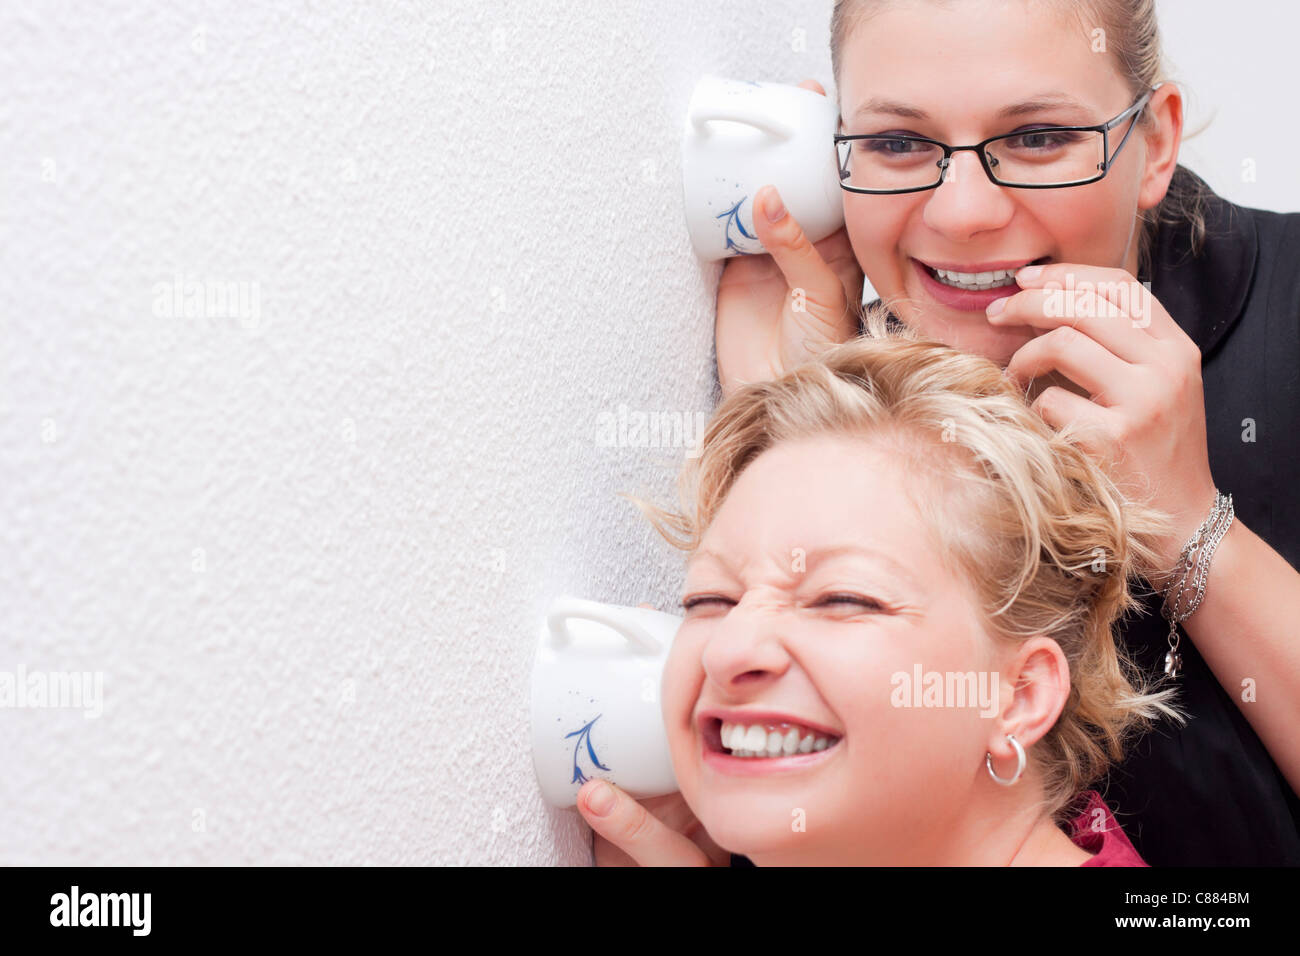 Funny moment of two young women spying. - Stock Image